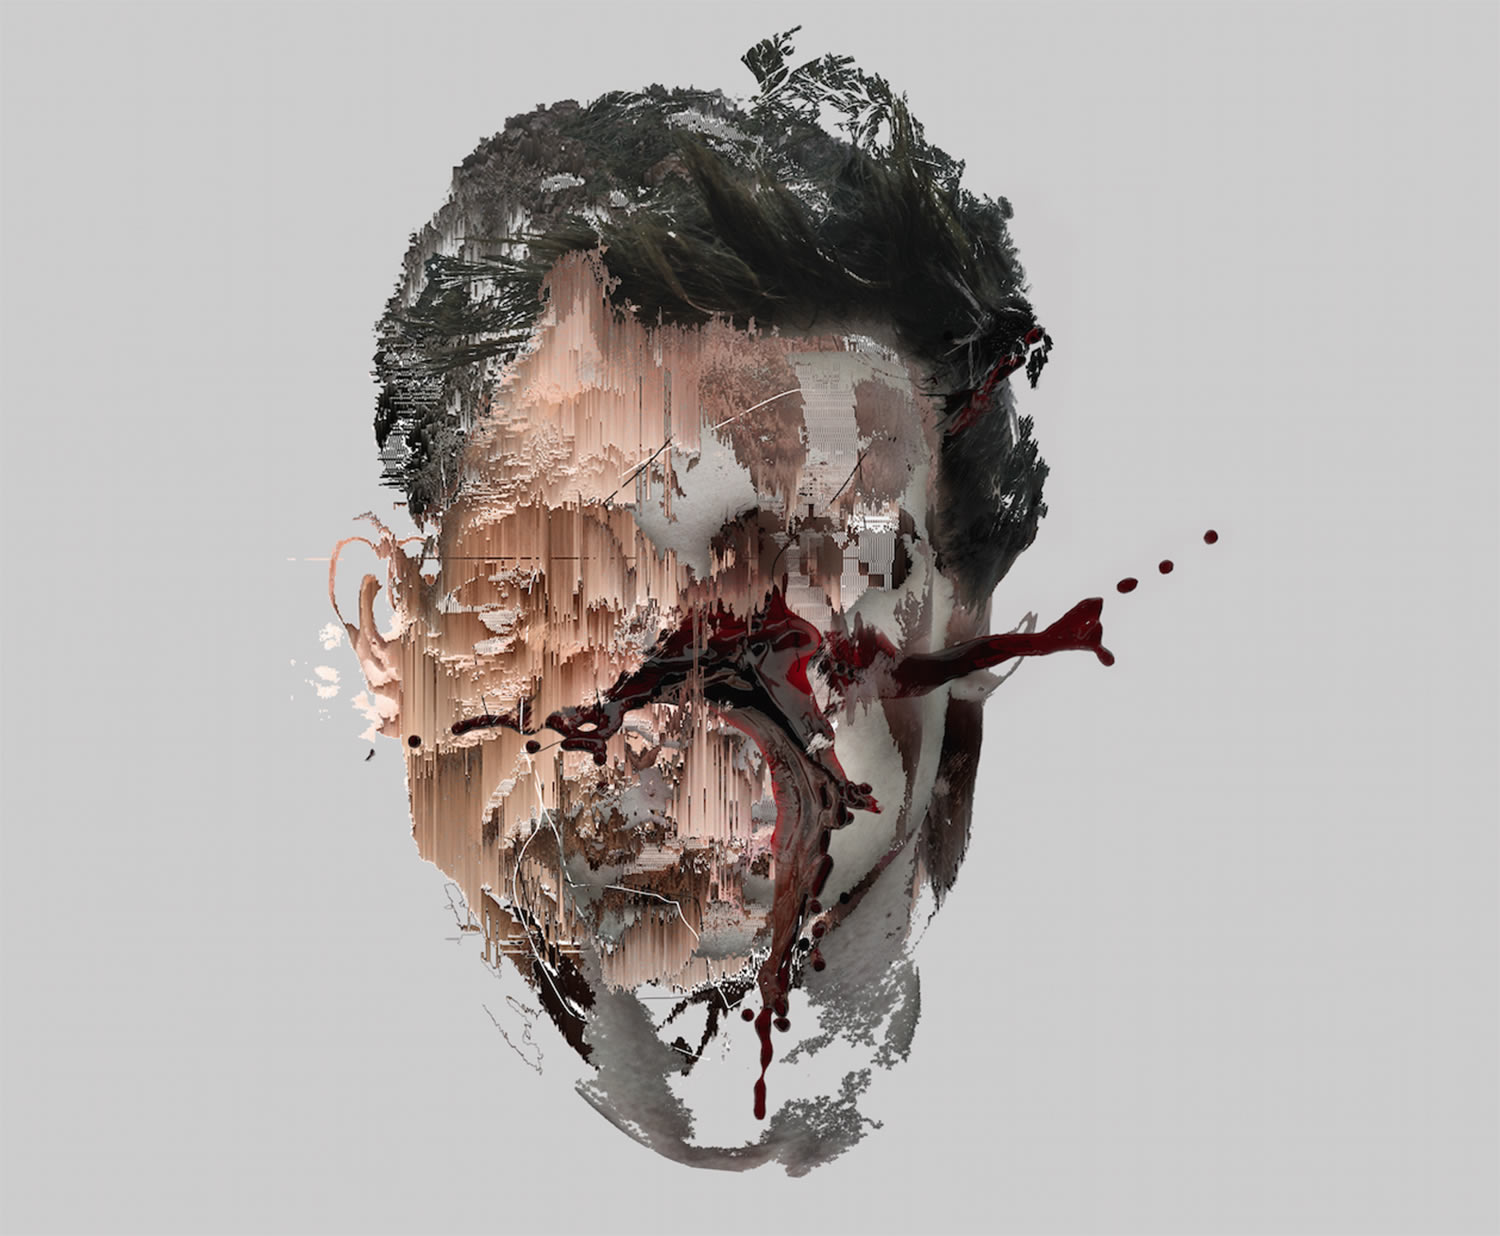 glitchy, exploding face